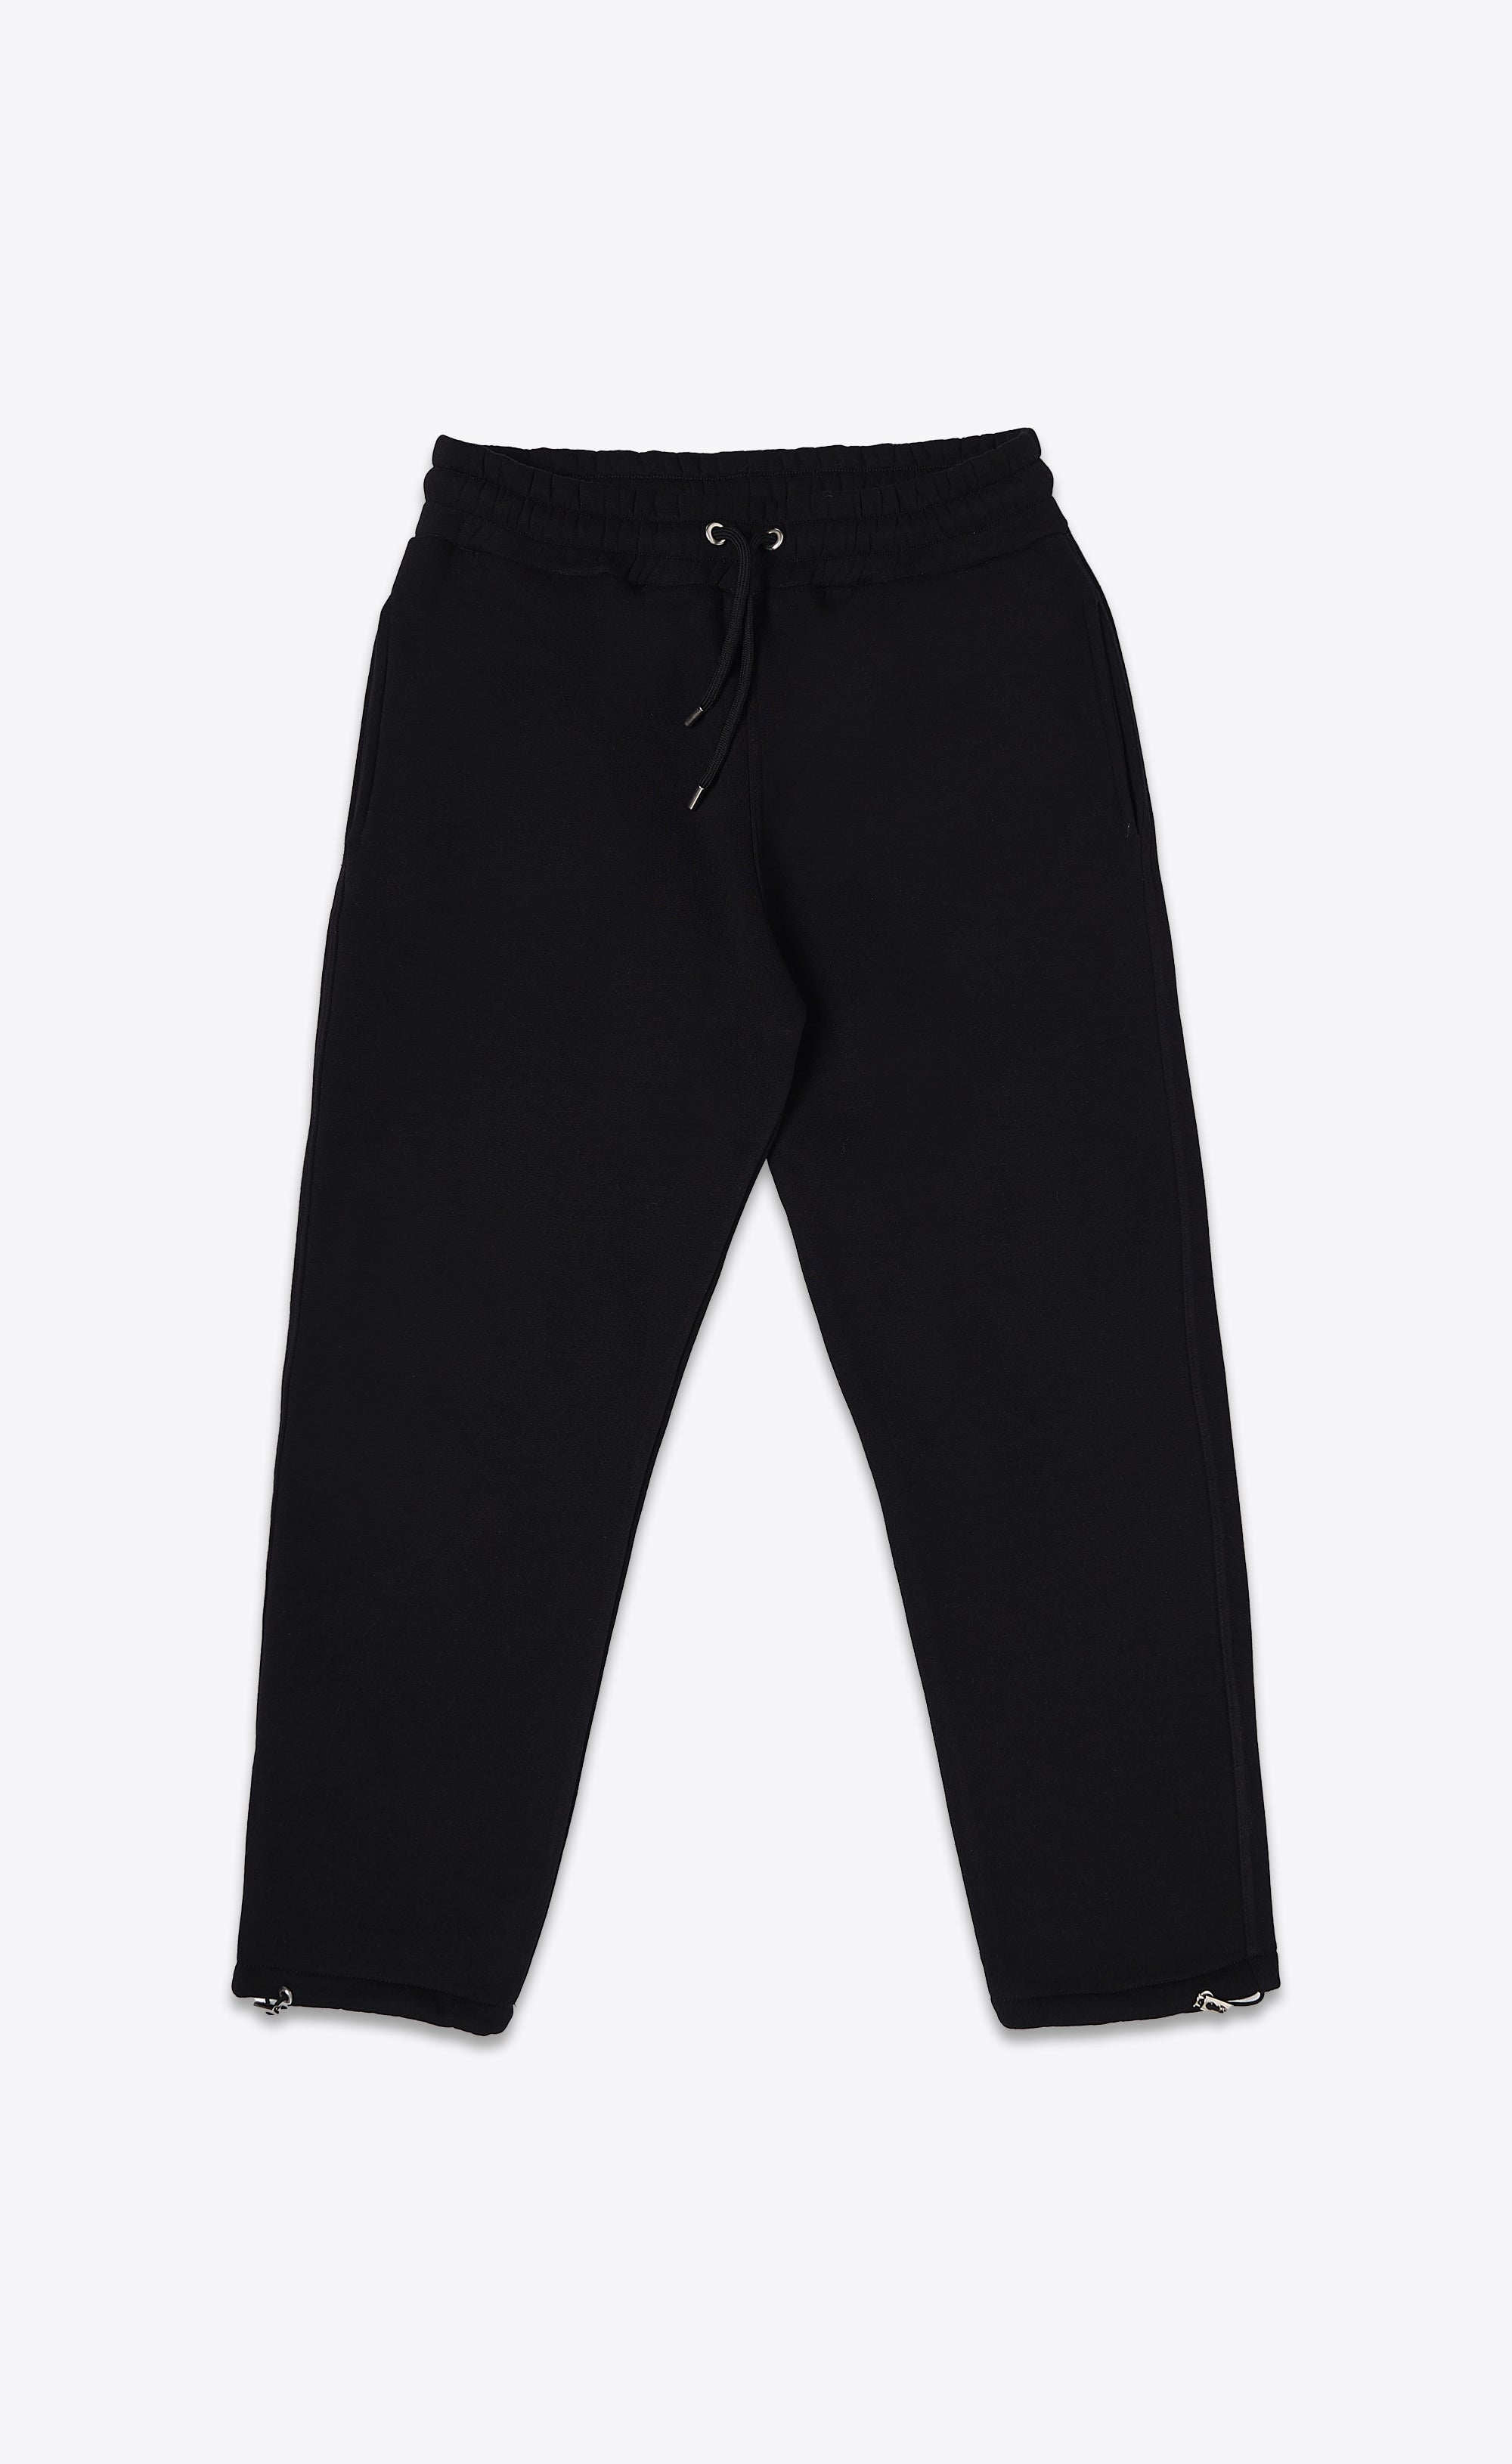 TRACKPANTS - BLACK